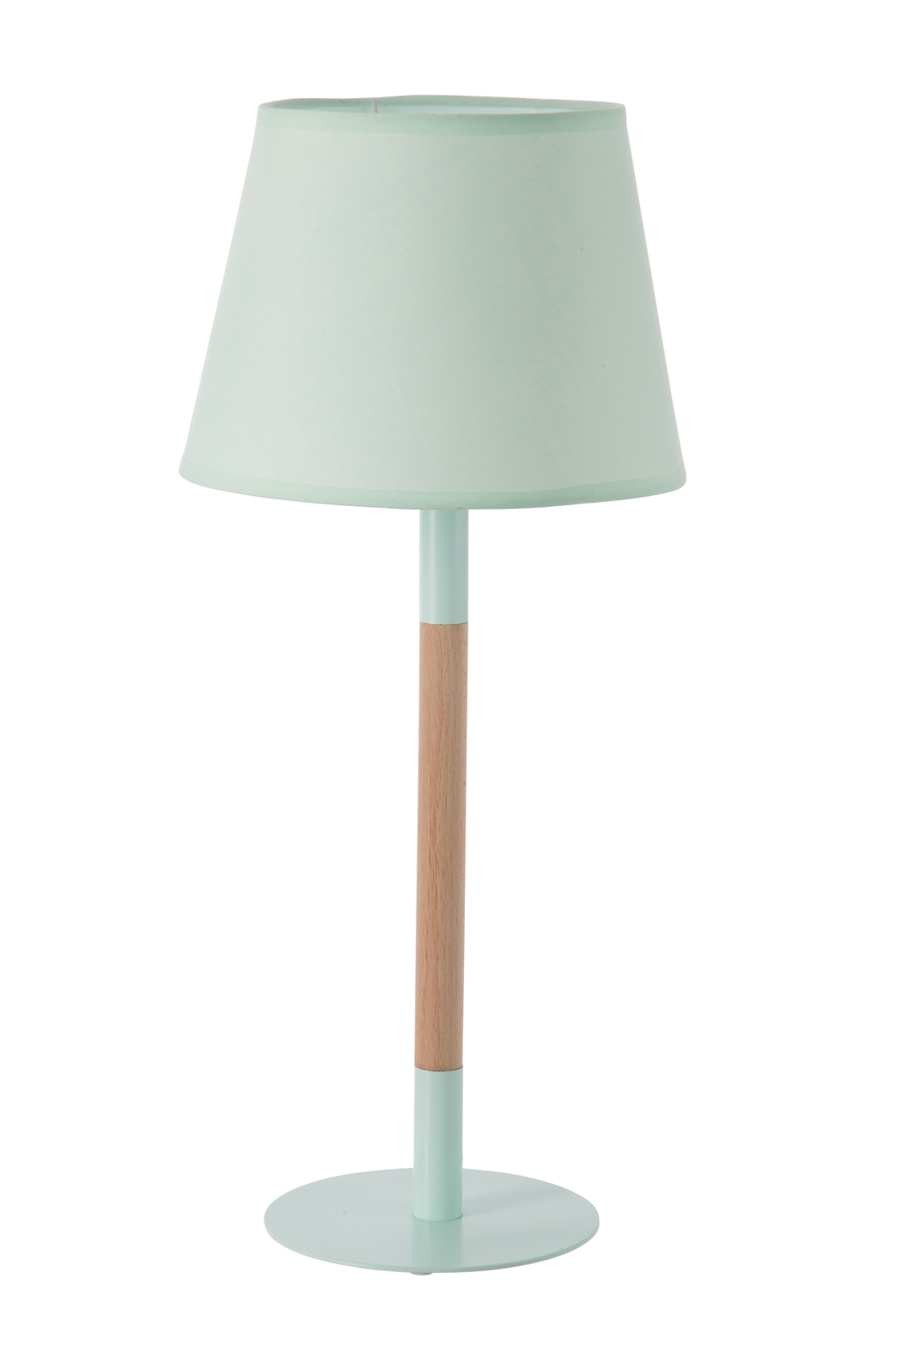 lampe de chevet bleu interesting lampe scandinave en bois. Black Bedroom Furniture Sets. Home Design Ideas